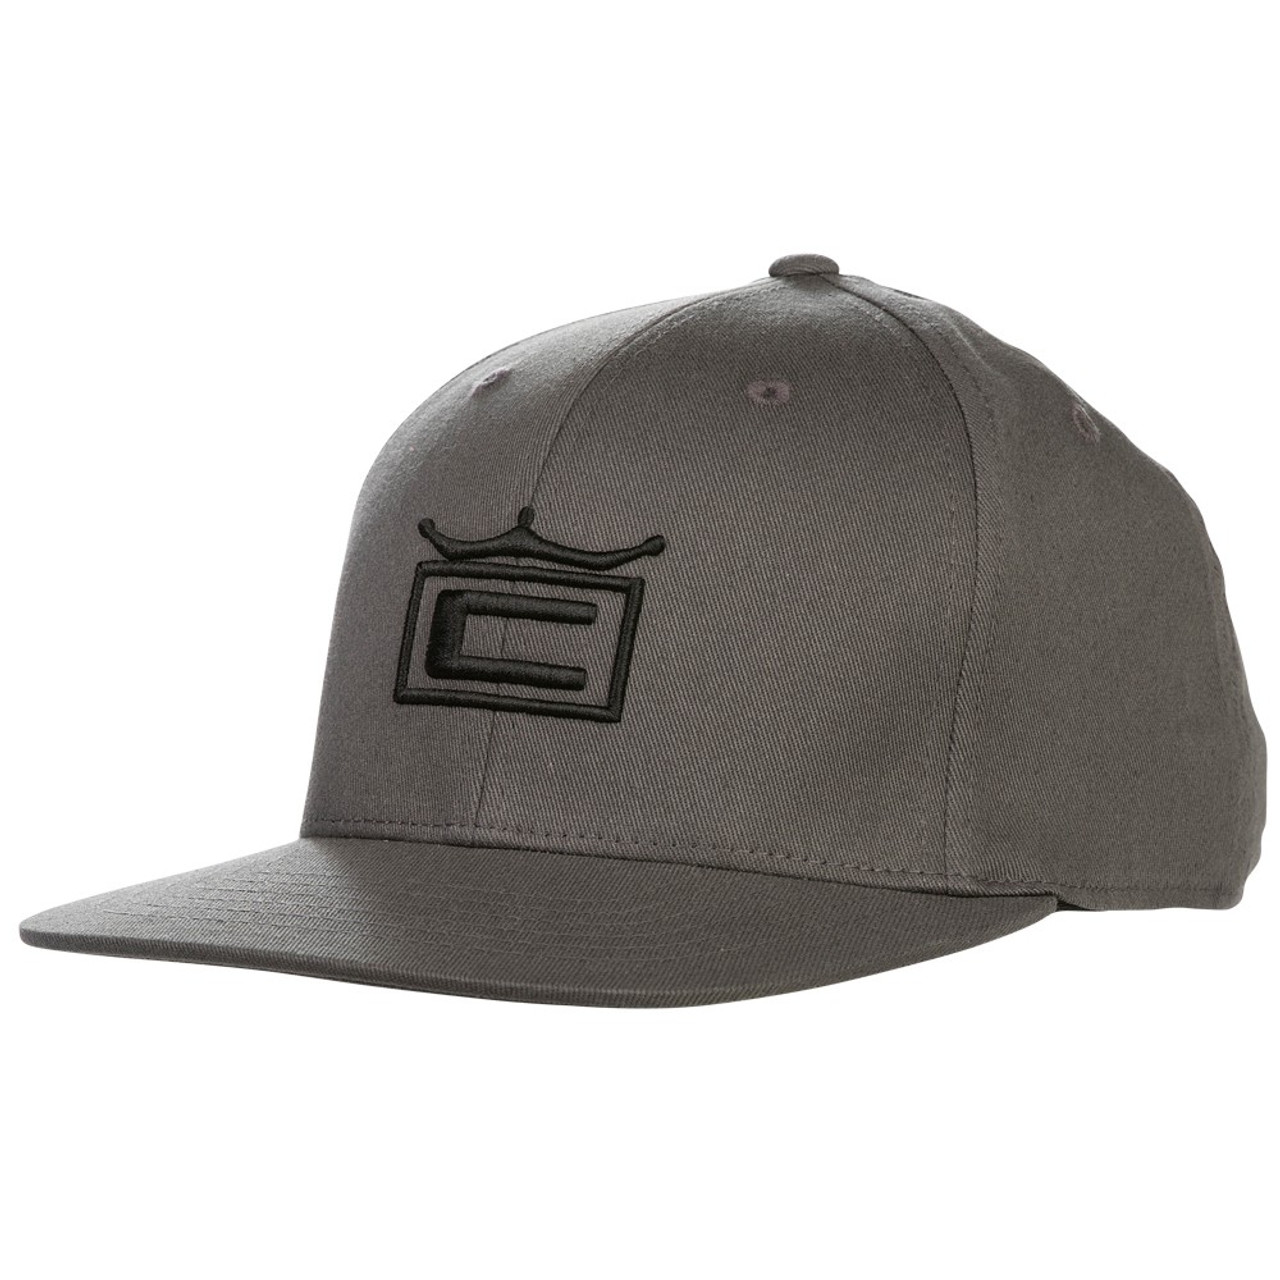 Cobra Tour Crown Snapback Cap - Quiet Shade